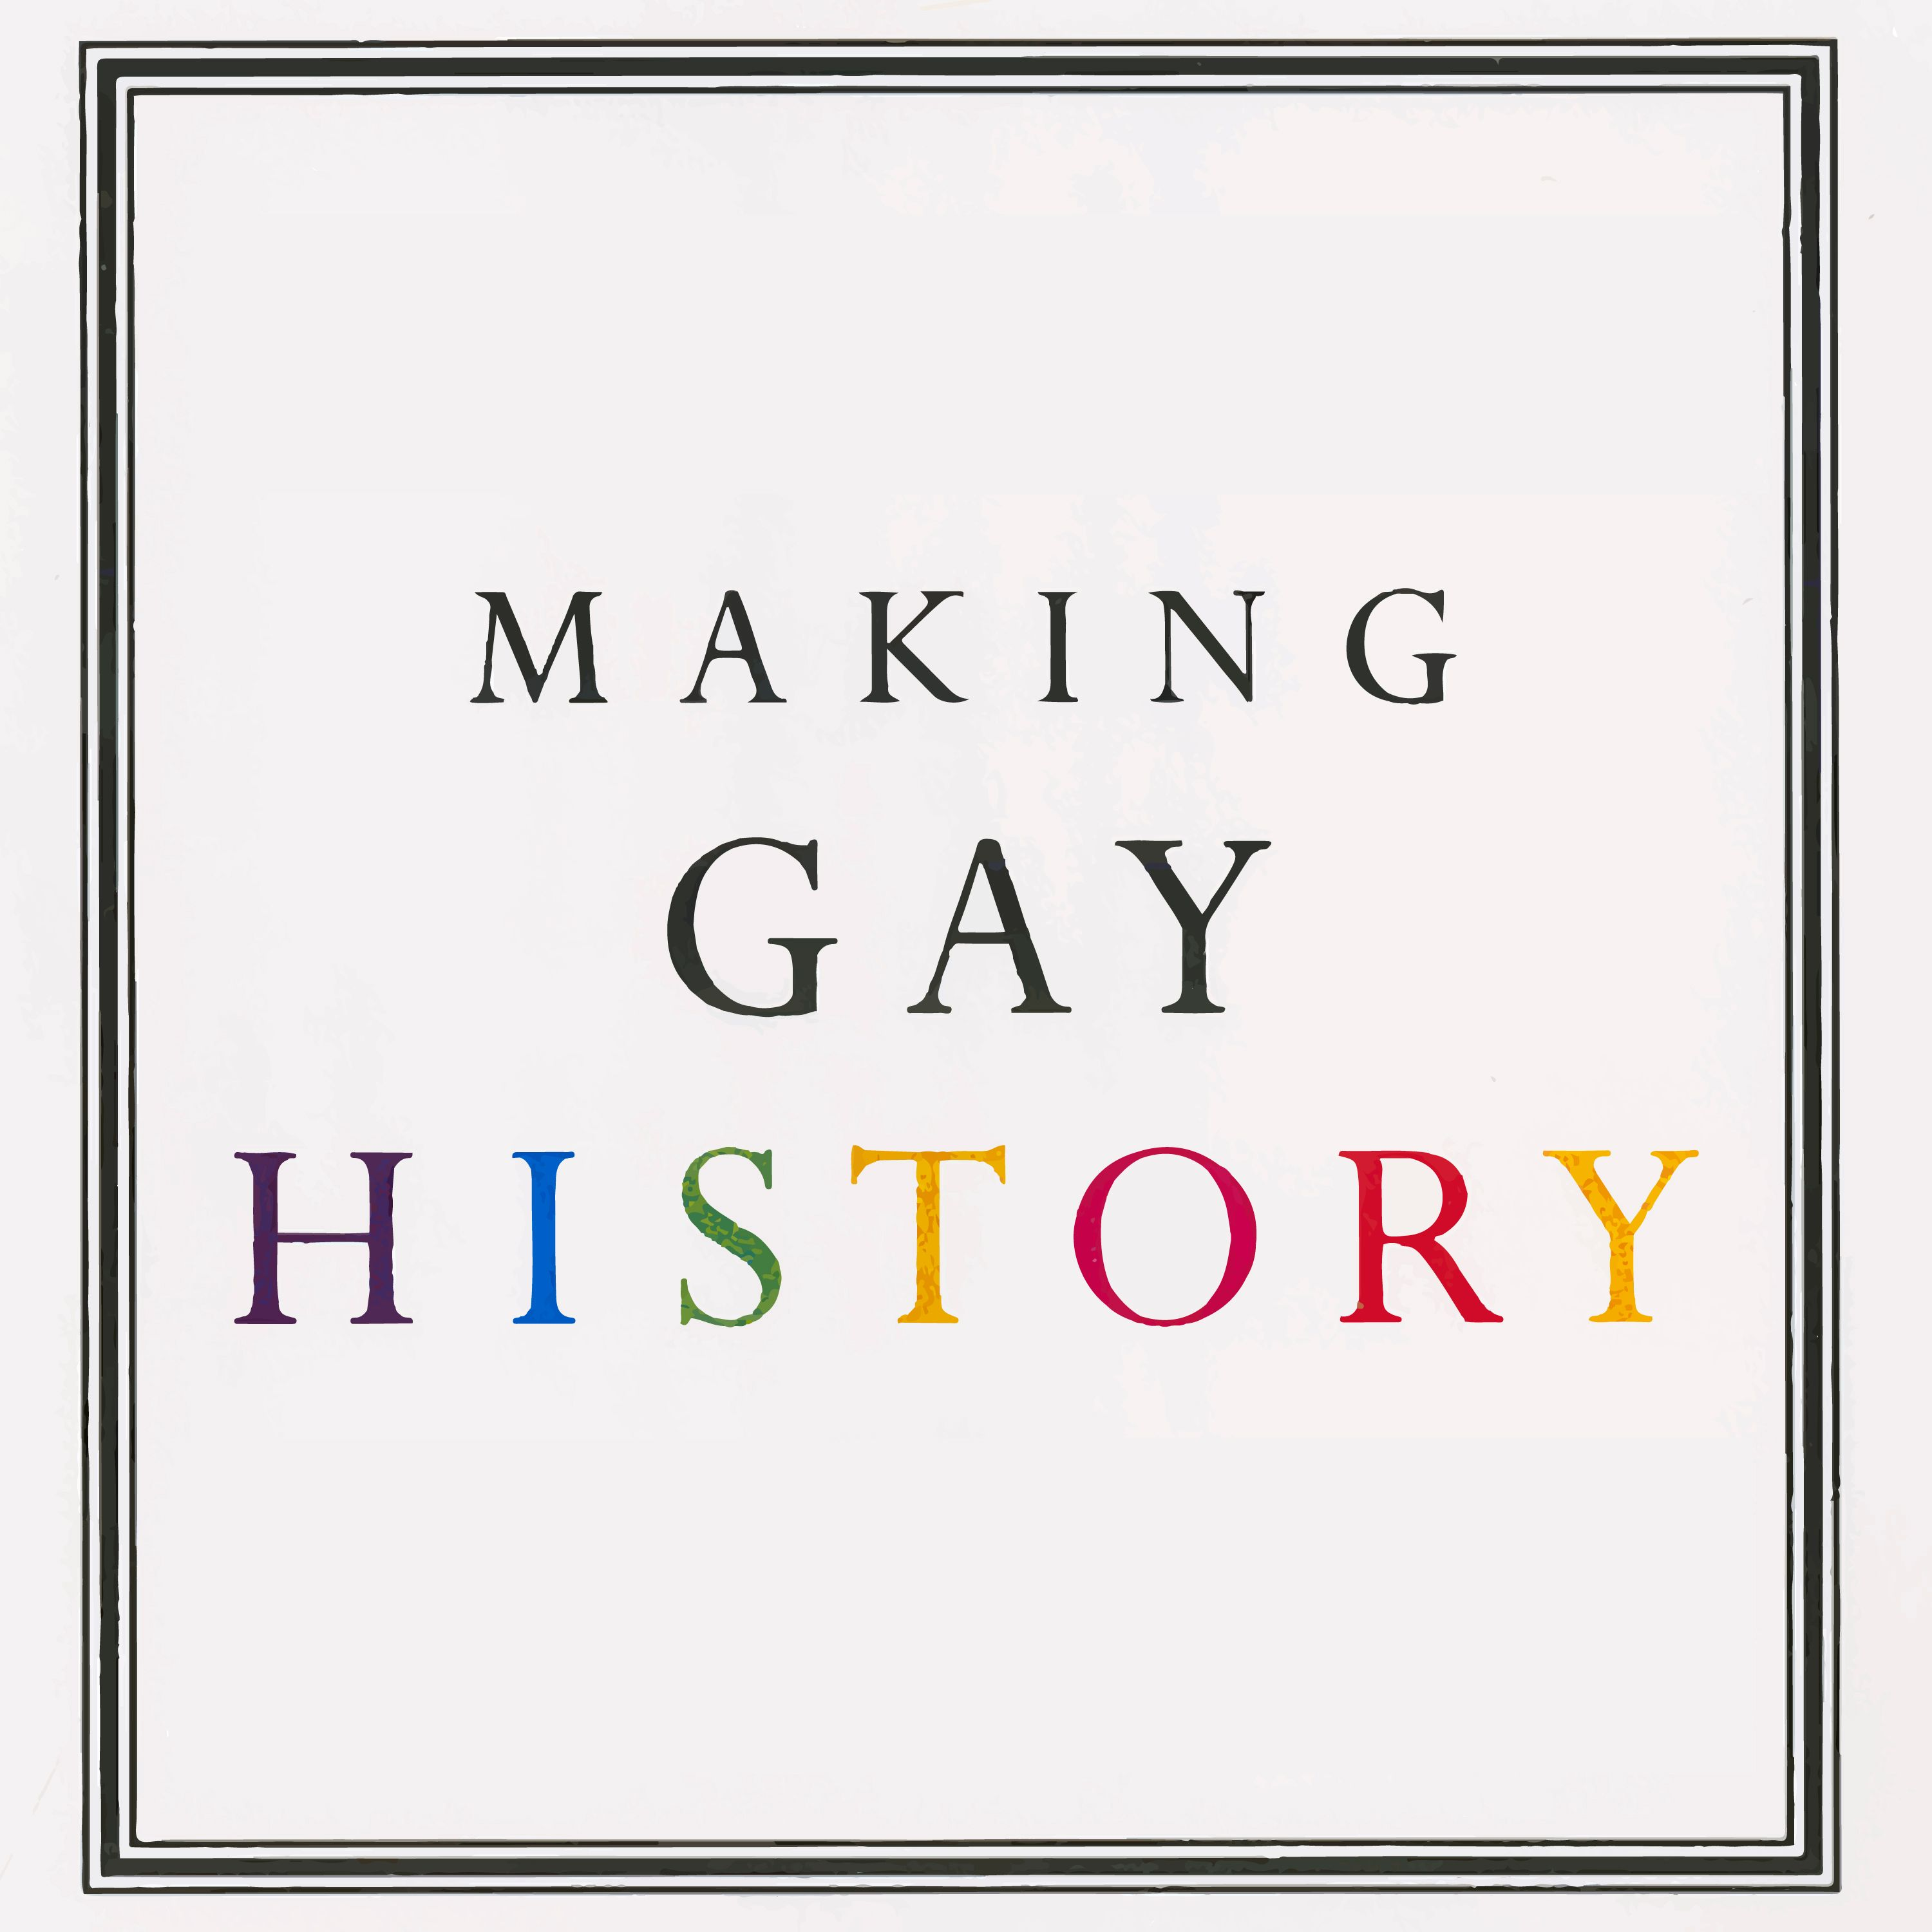 Making Gay History podcast cover image